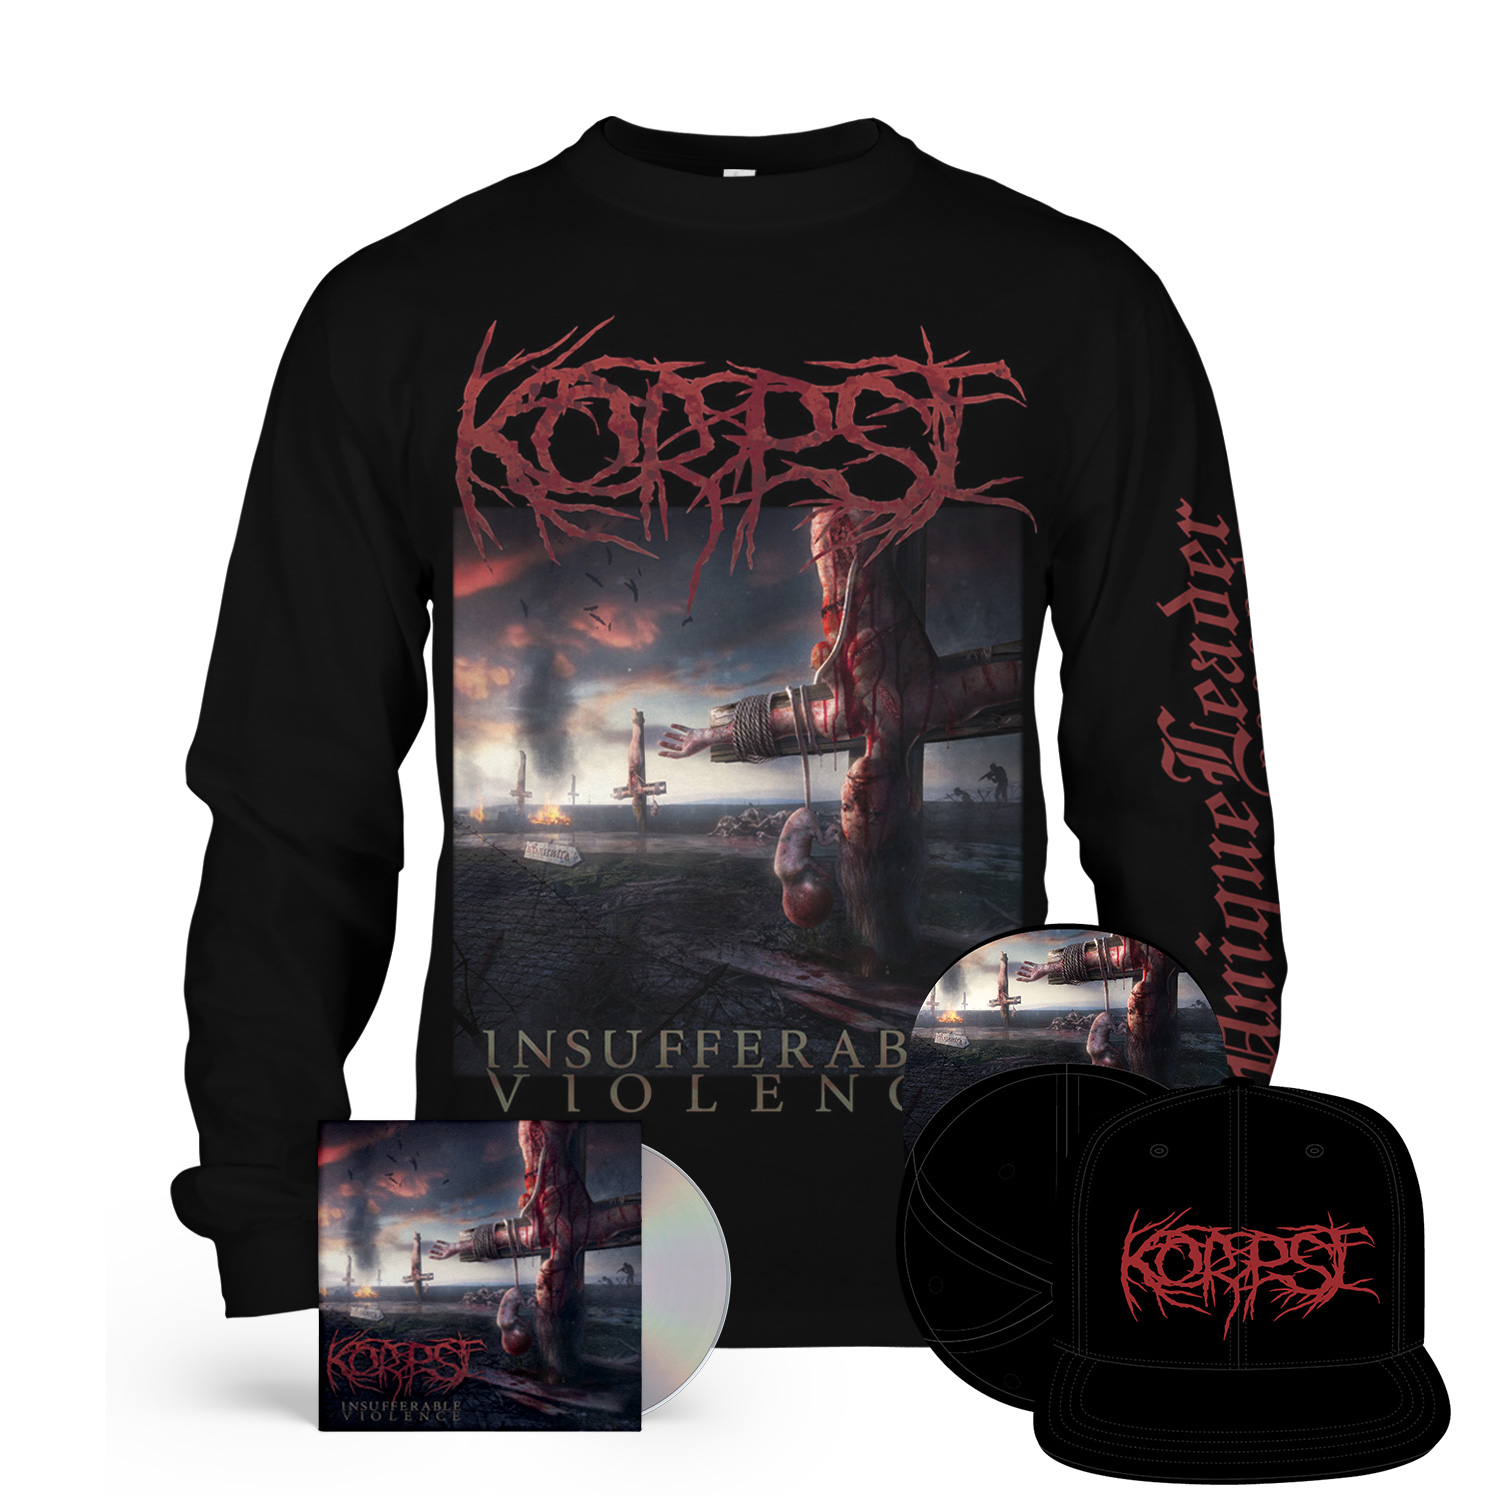 Insufferable Violence Longsleeve + CD Bundle